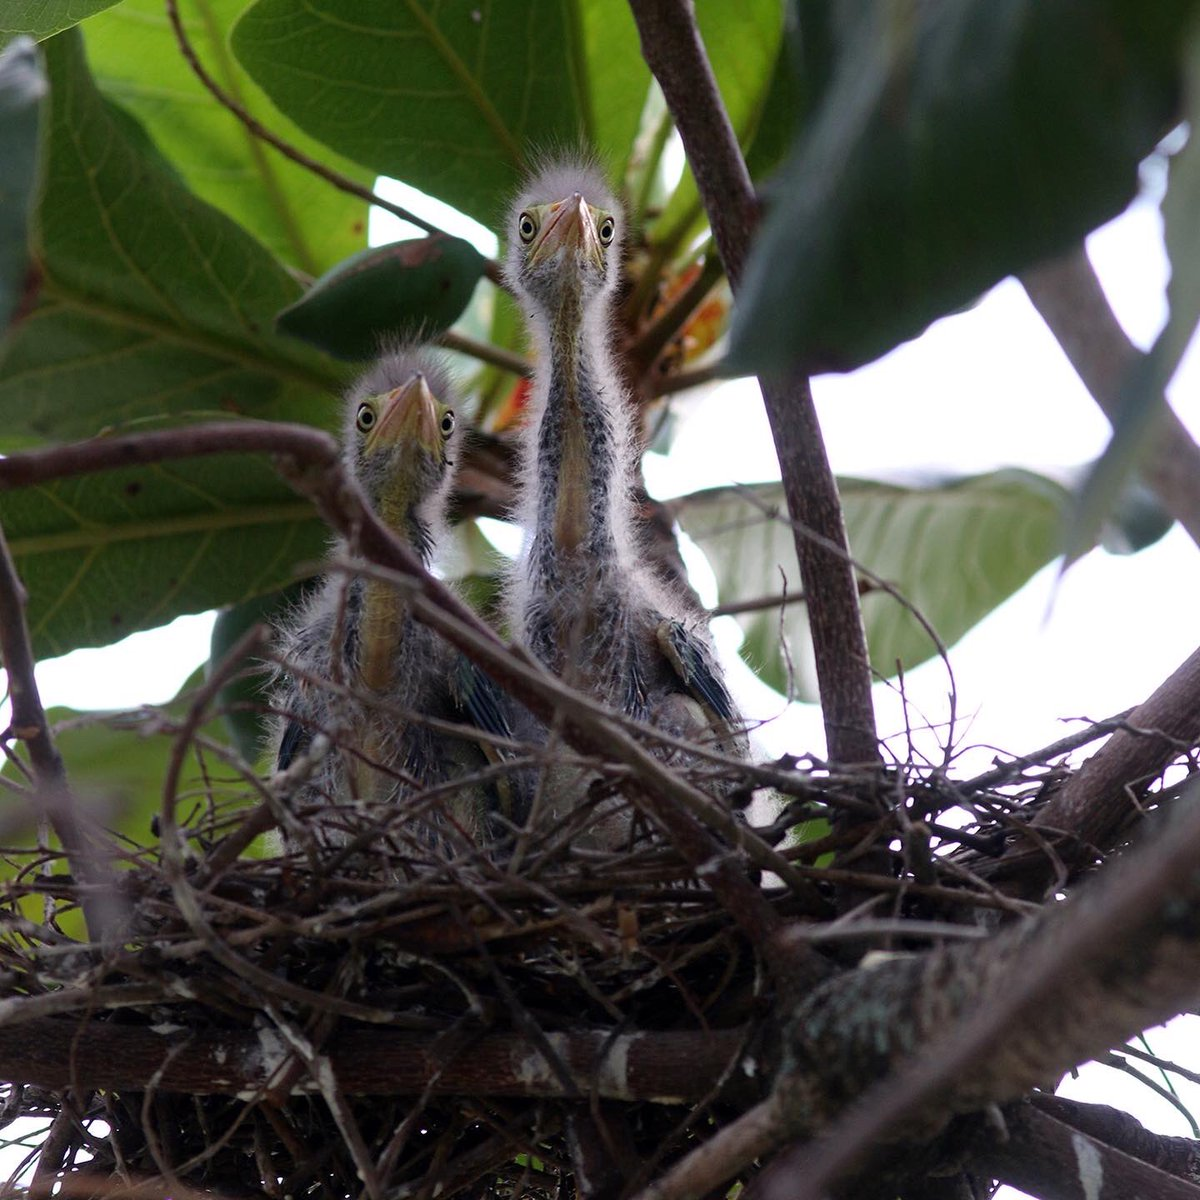 NEST UPDATE!  The chicks have emerged!  When mother green heron leaves to feed the long-necked chicks stare at us.  When she is back she hides them from us https://t.co/gA0tm6OcNz